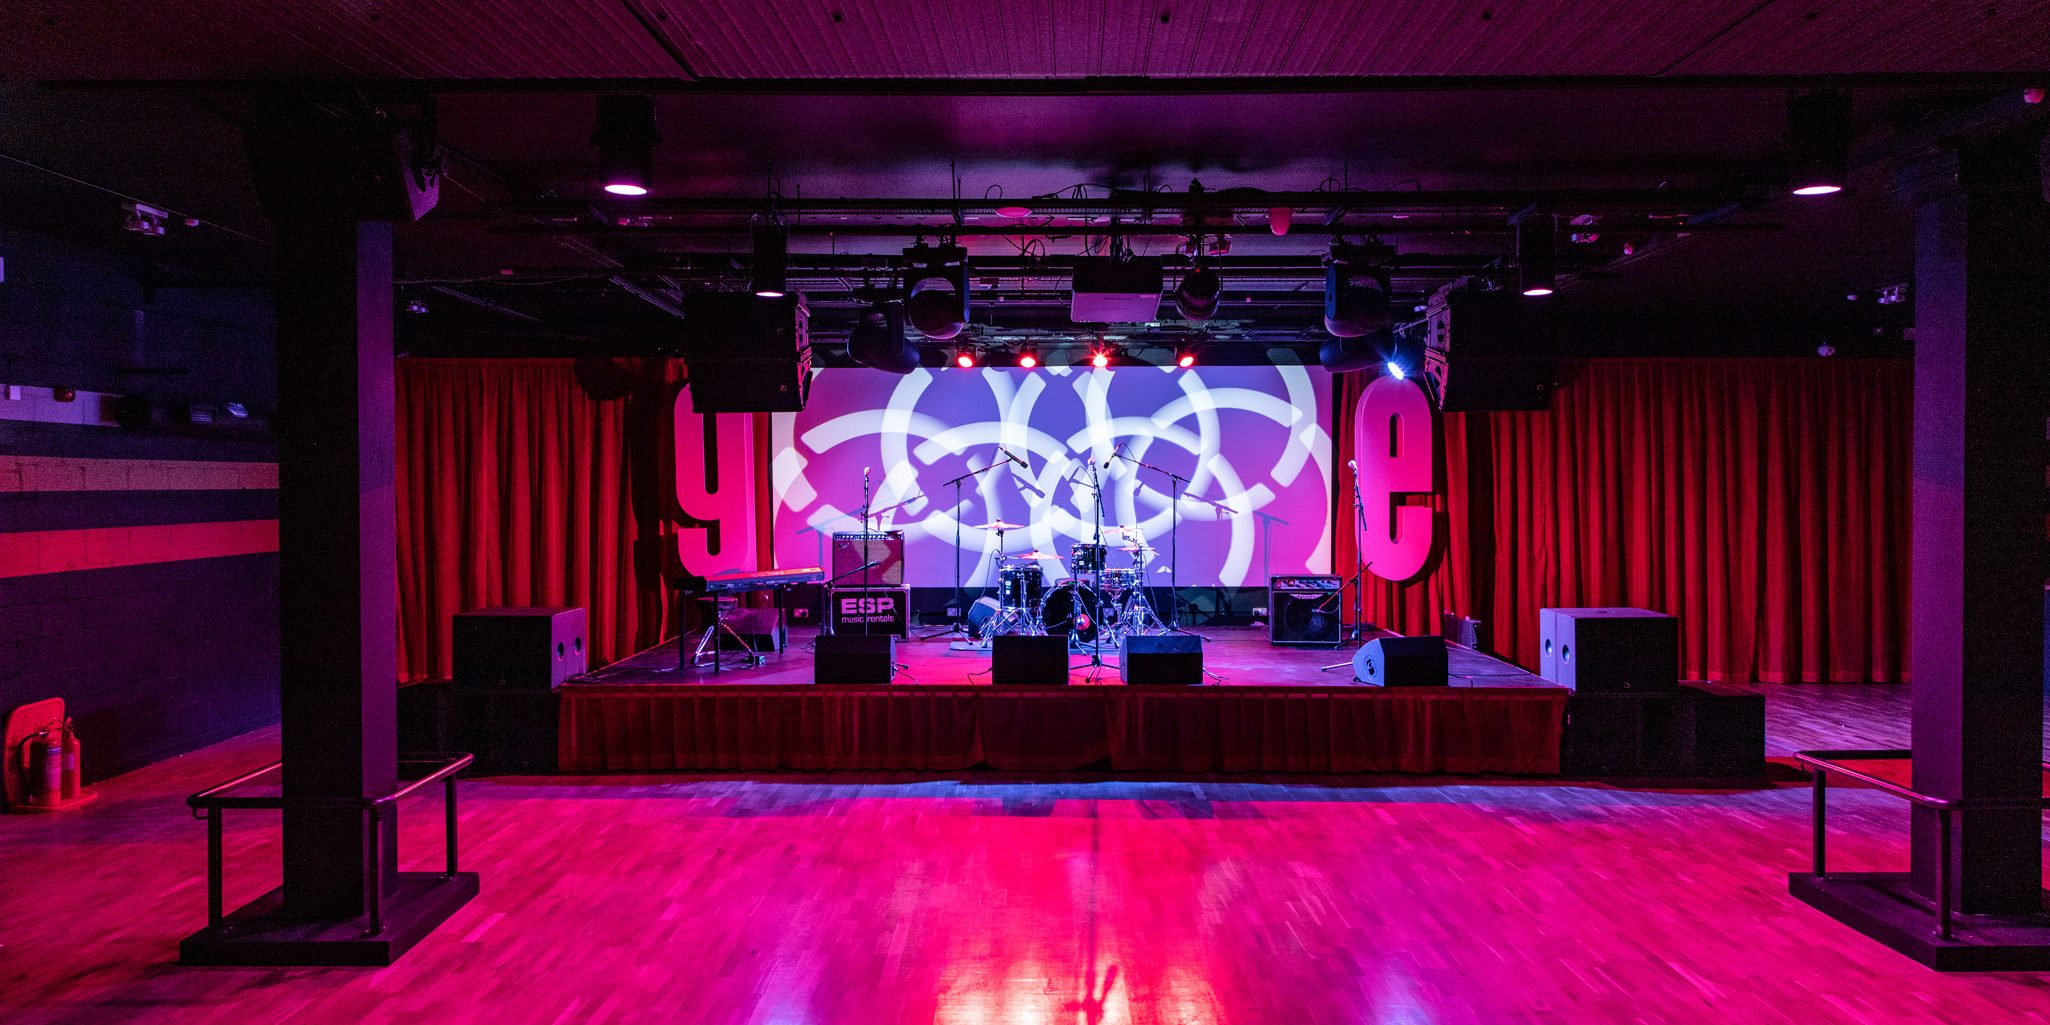 phot of venue with full band on stage